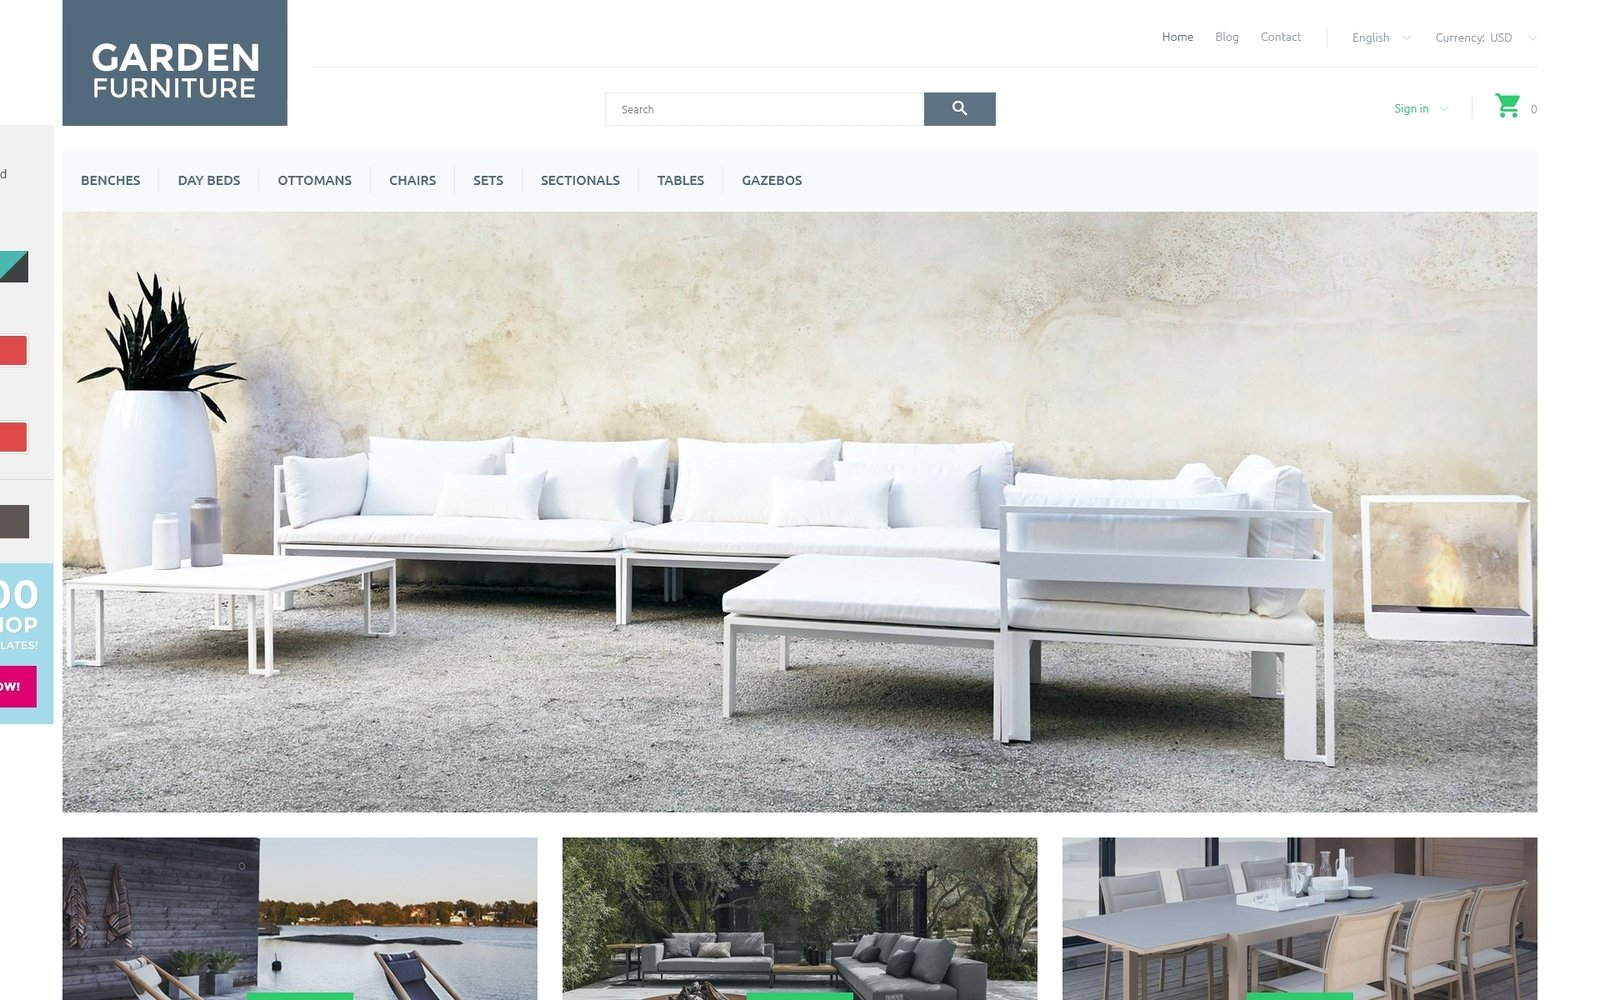 Garden Furniture Tema PrestaShop №58023